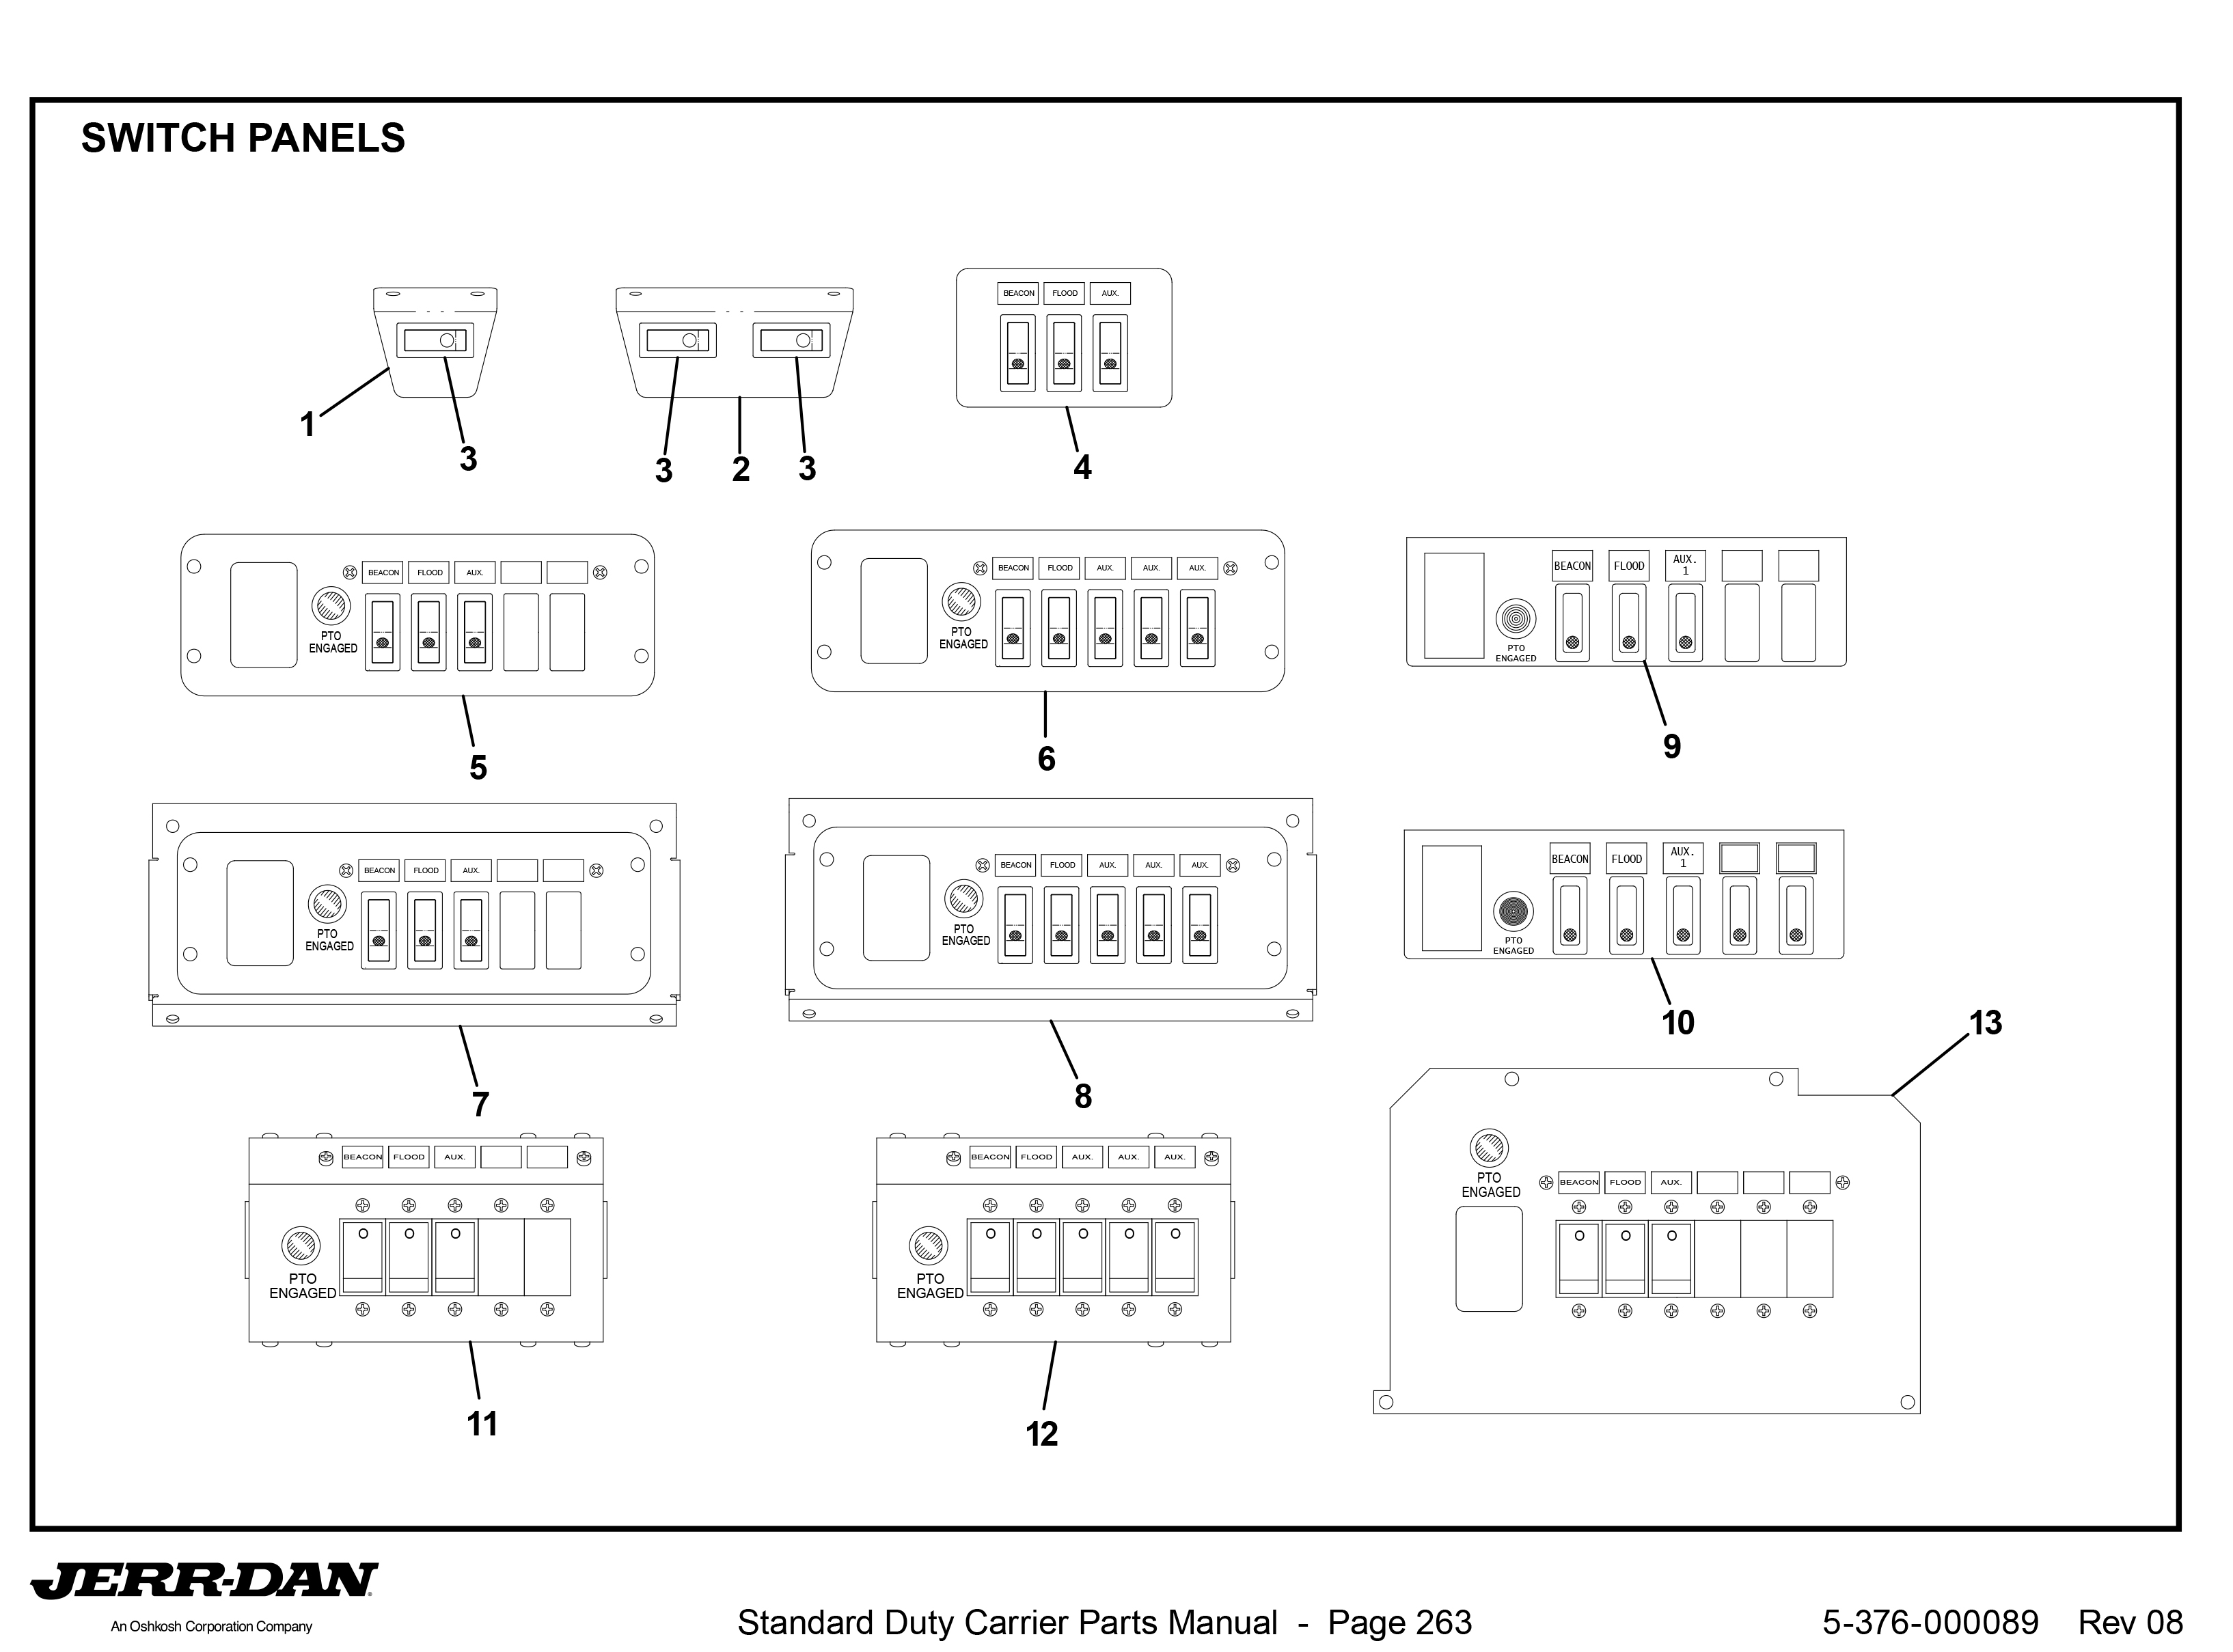 p 10311 Diagram 127 switch panels detroit wrecker sales jerr dan light bar wiring diagram at soozxer.org